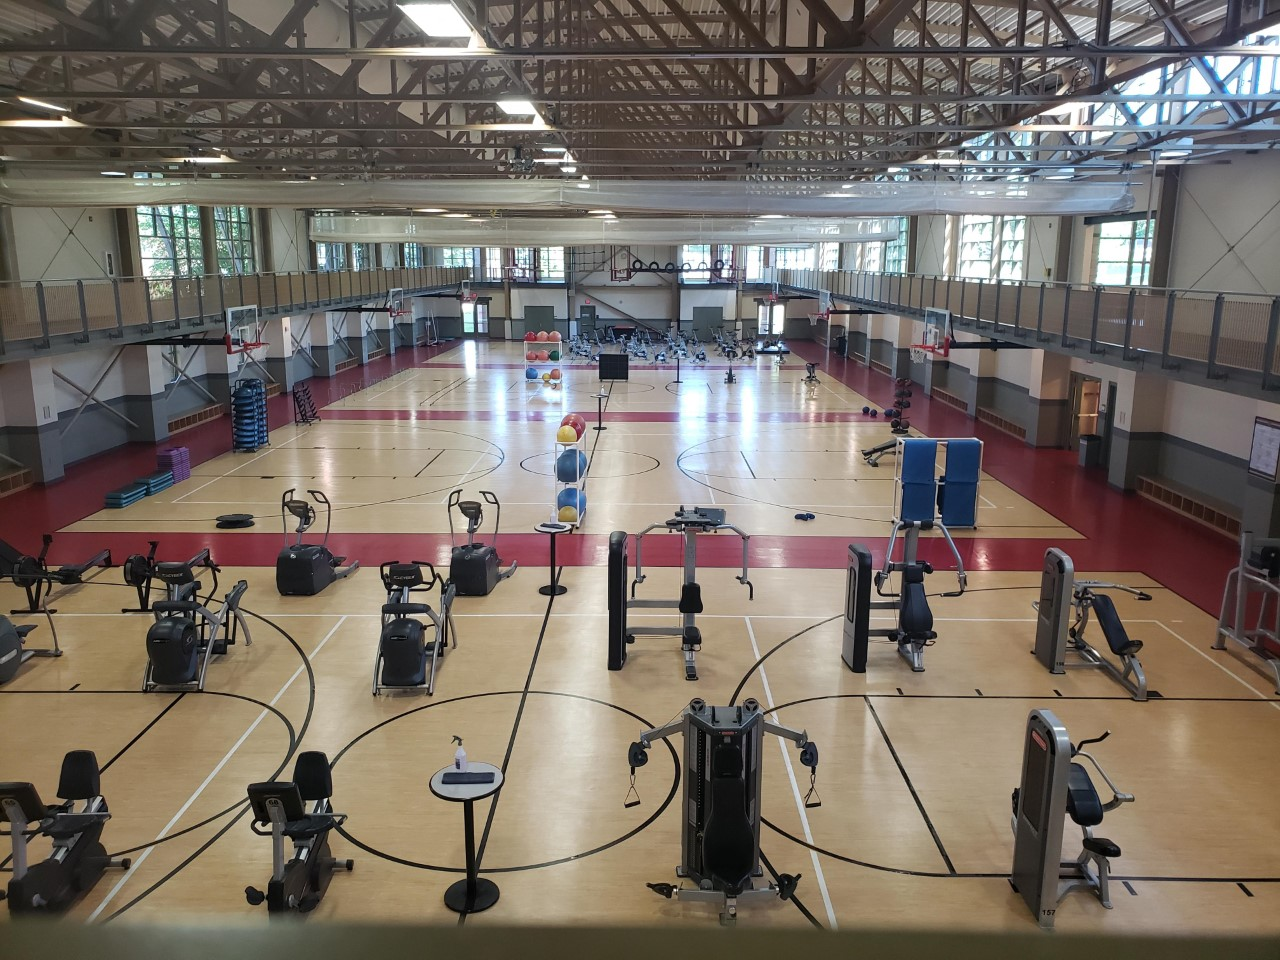 Andrews Student Recreation & Wellness Center Basketball Courts